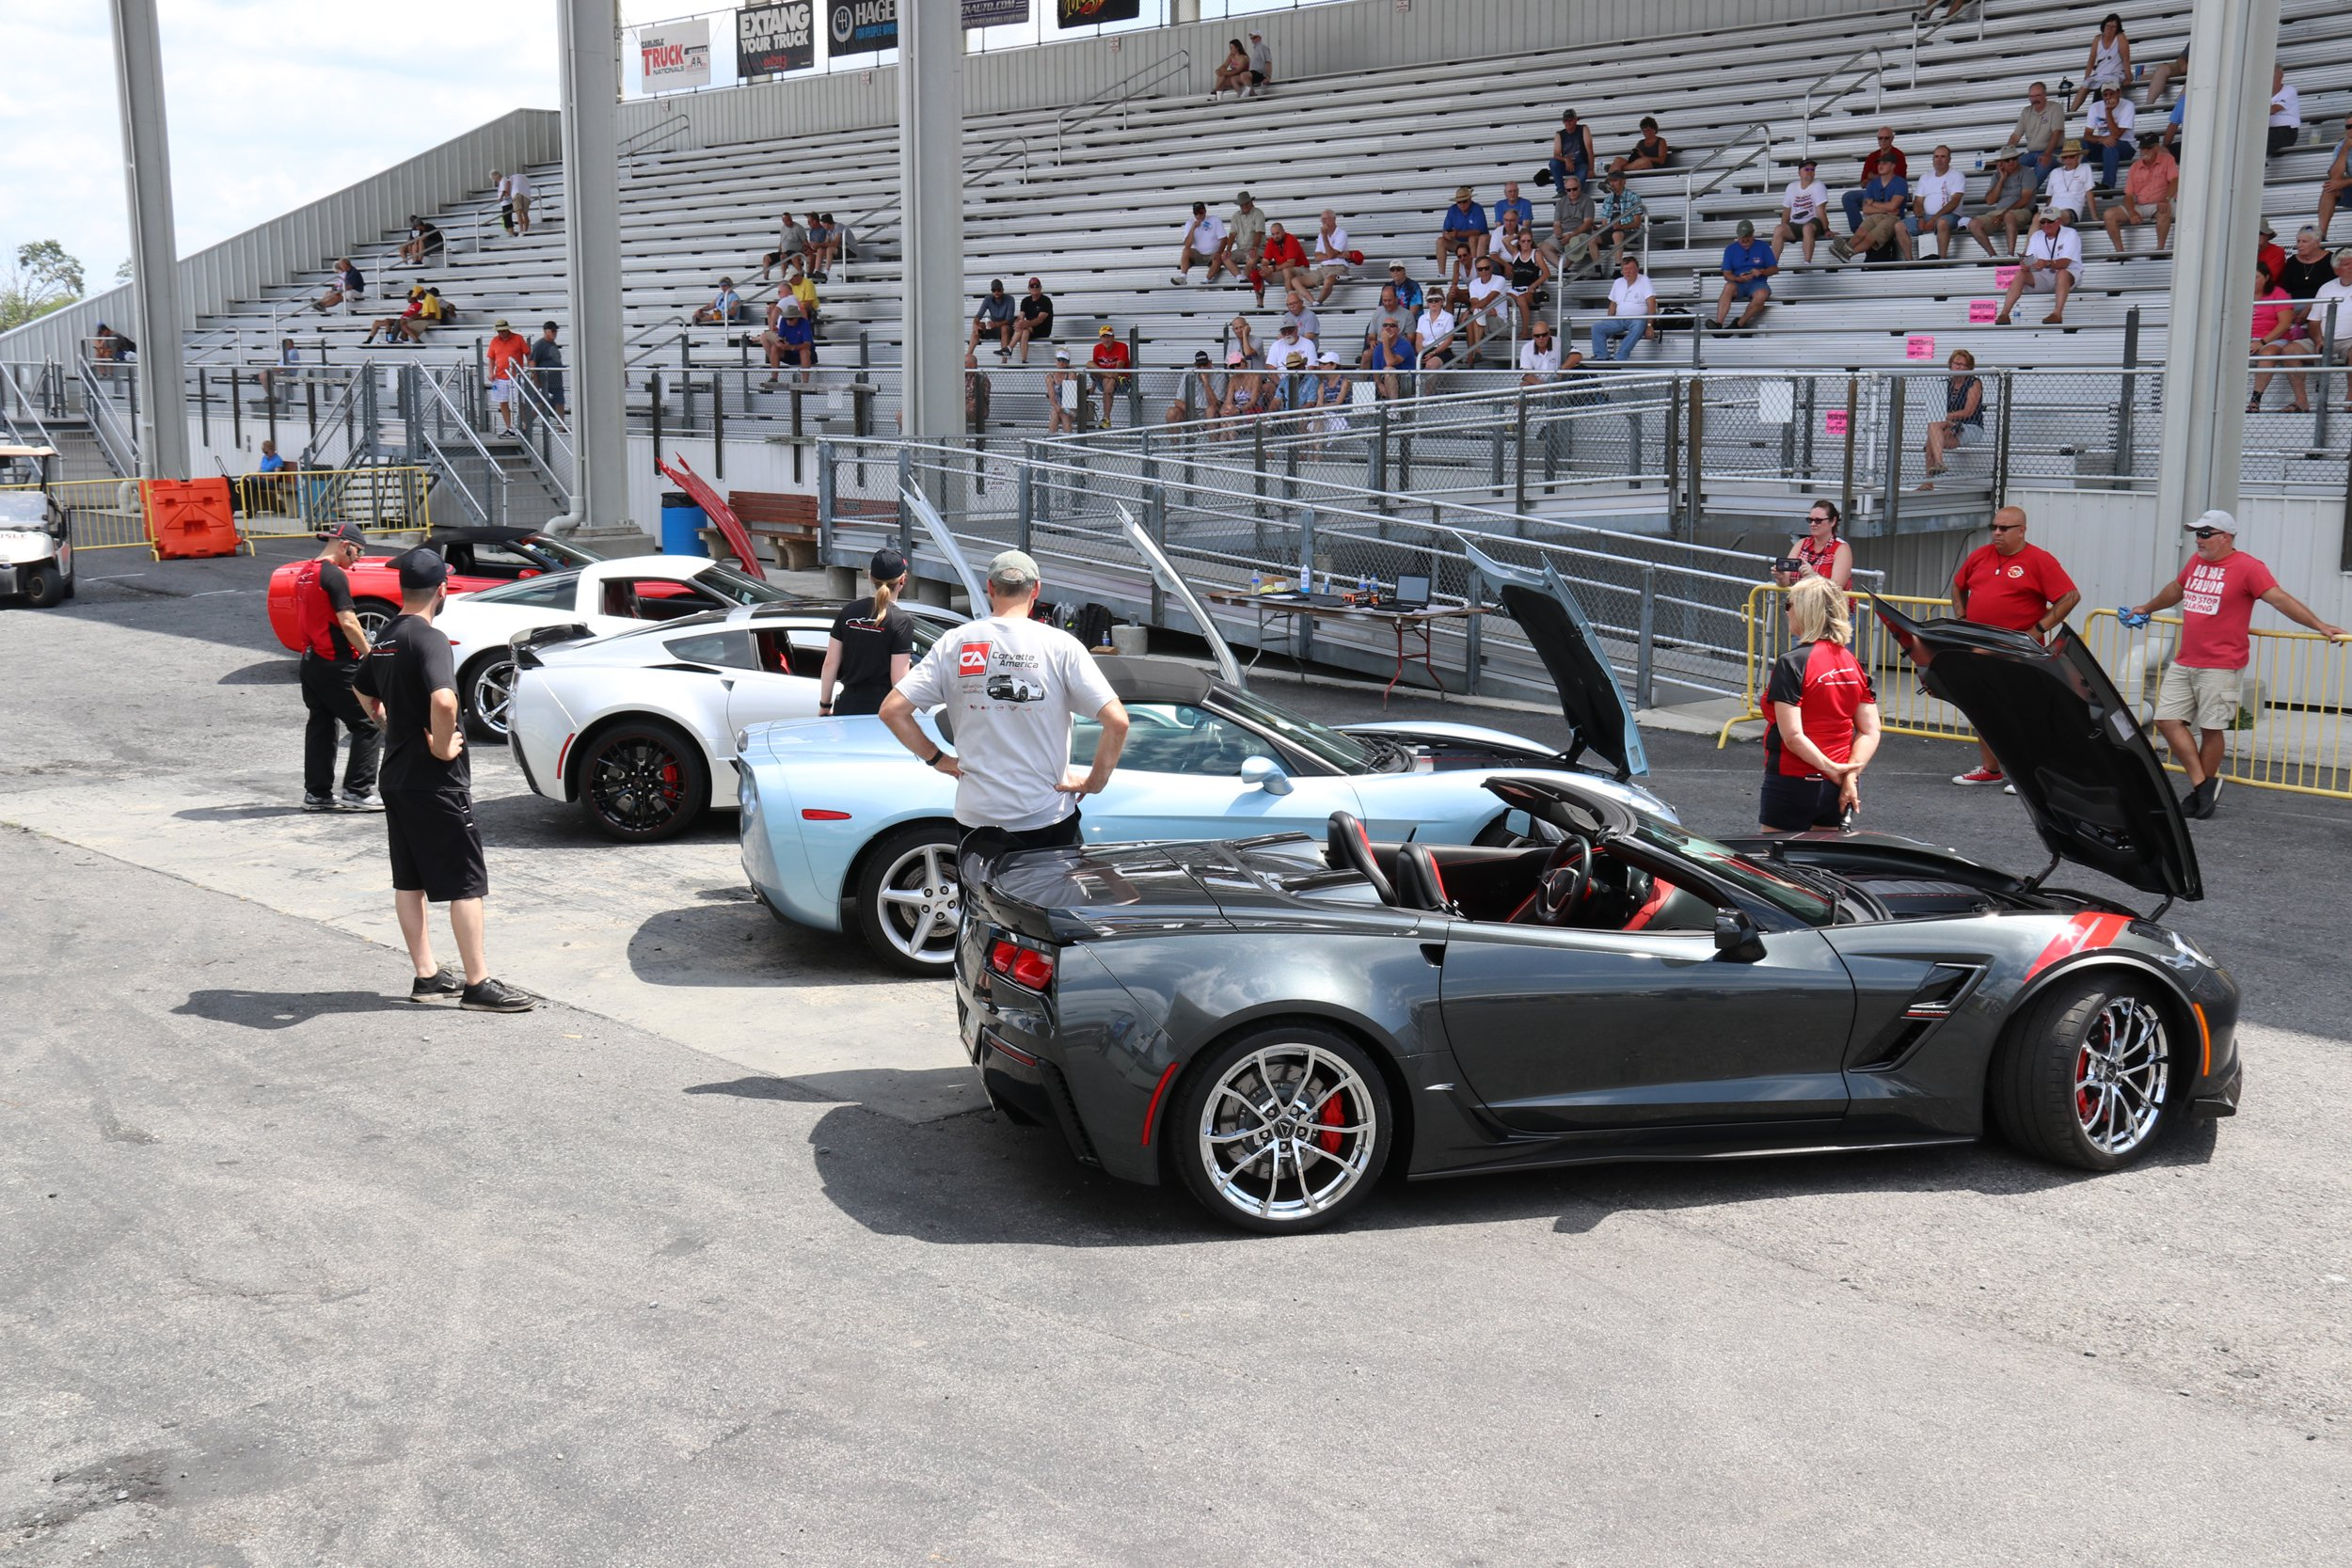 corvettes-at-carlisle-2019-one-for-the-record-books-2019-08-28_20-26-50_968749.jpg